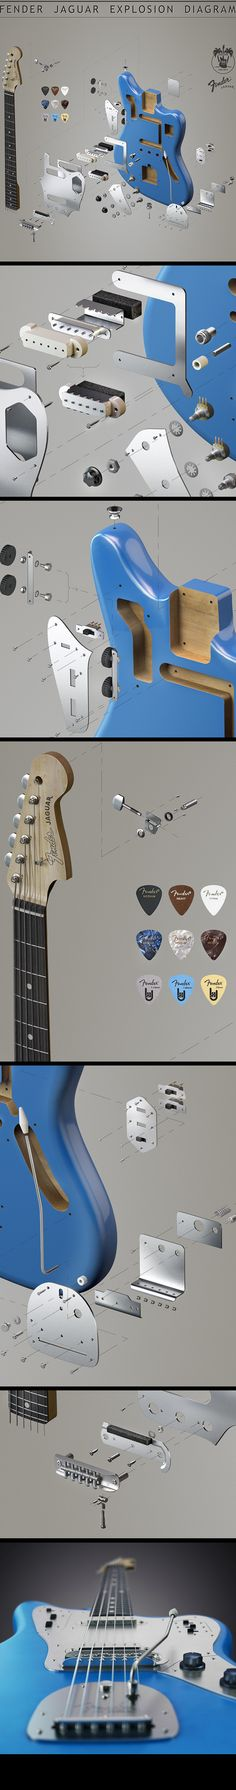 Fender Jaguar by Vladimir Andreev, via Behance